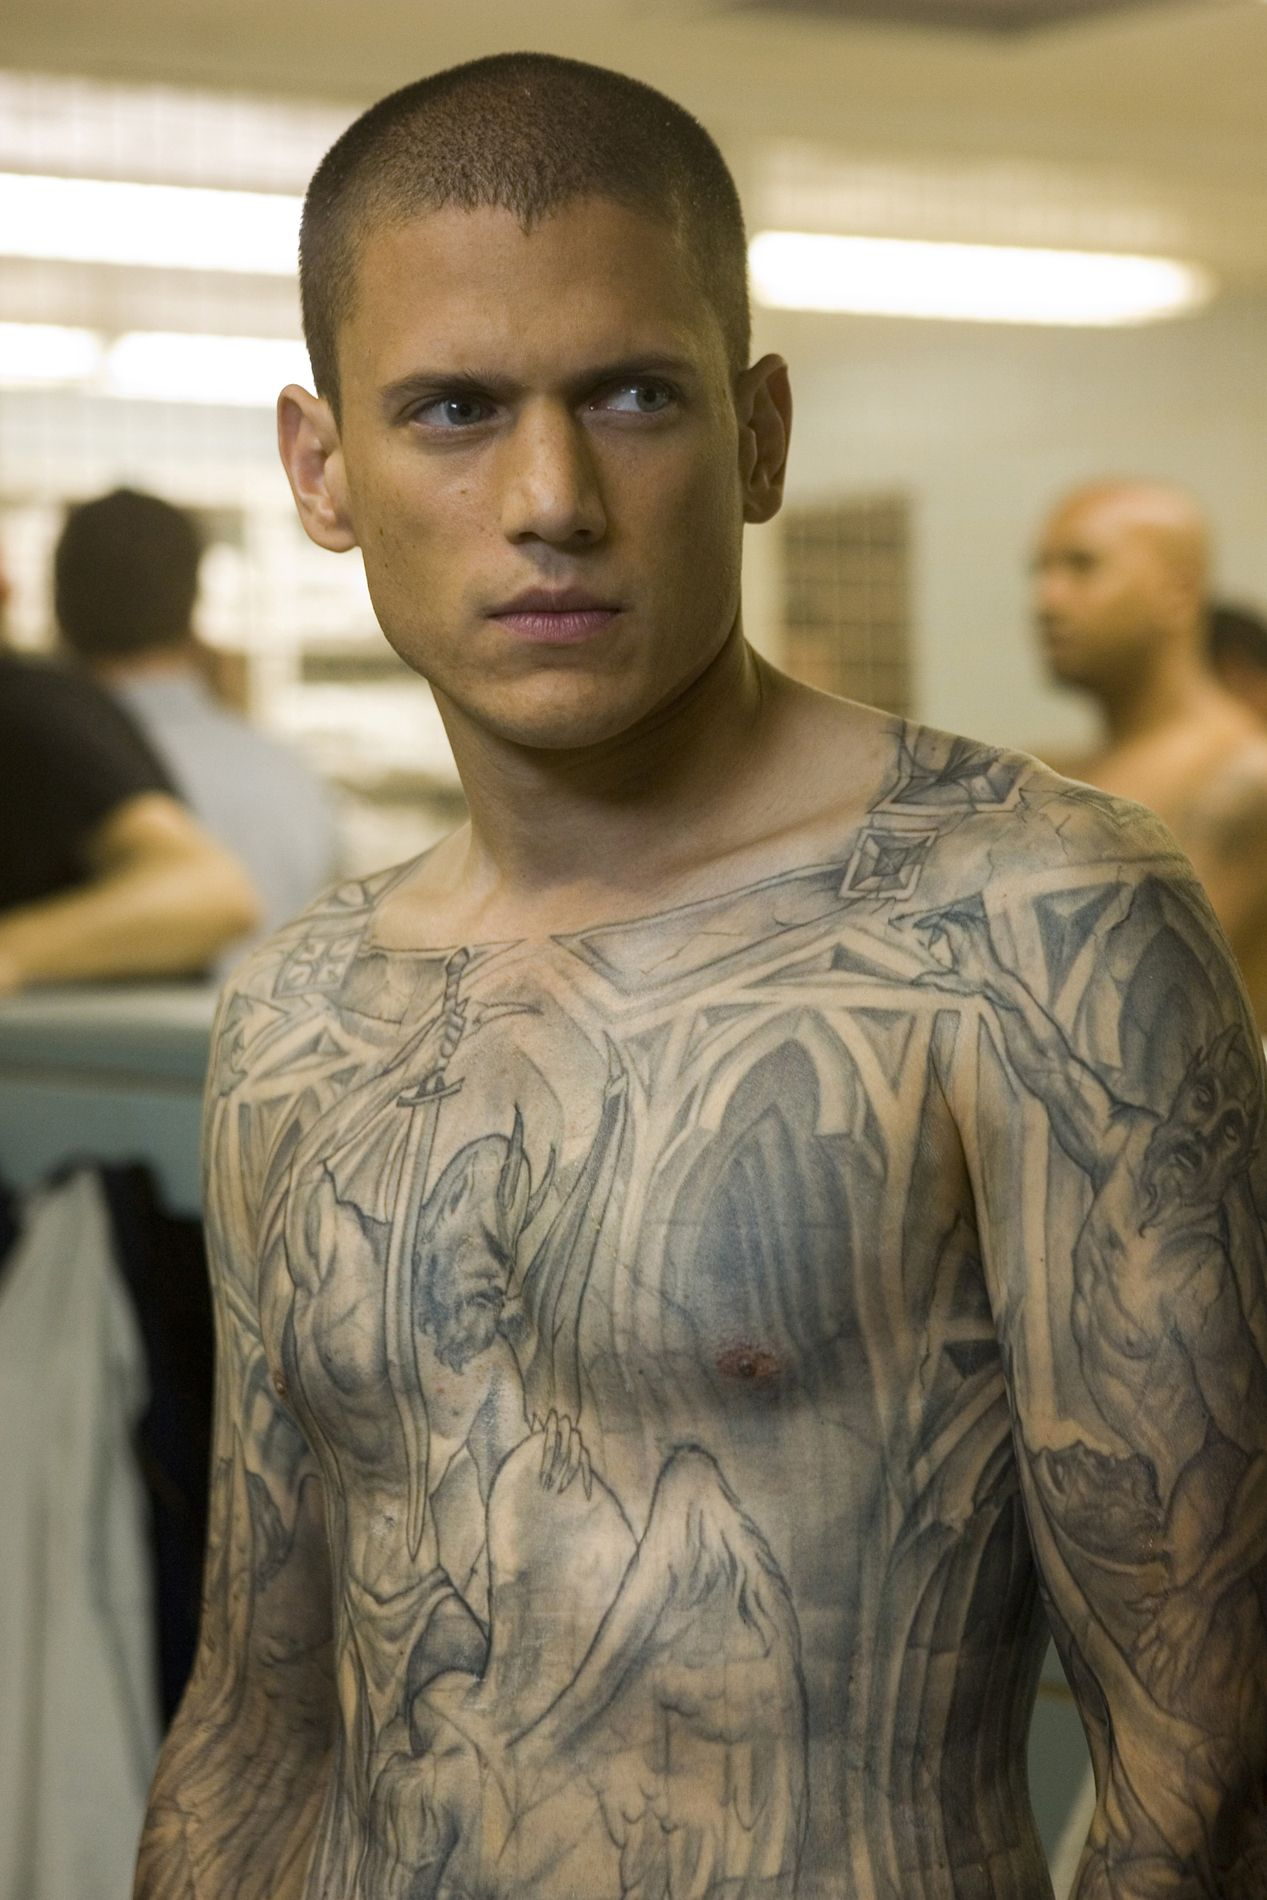 Micheal Scoofield - Wentworth Miller, Prison Break, tattoo, body art, ink, skin, sexy guy, tv series, portrait, photo